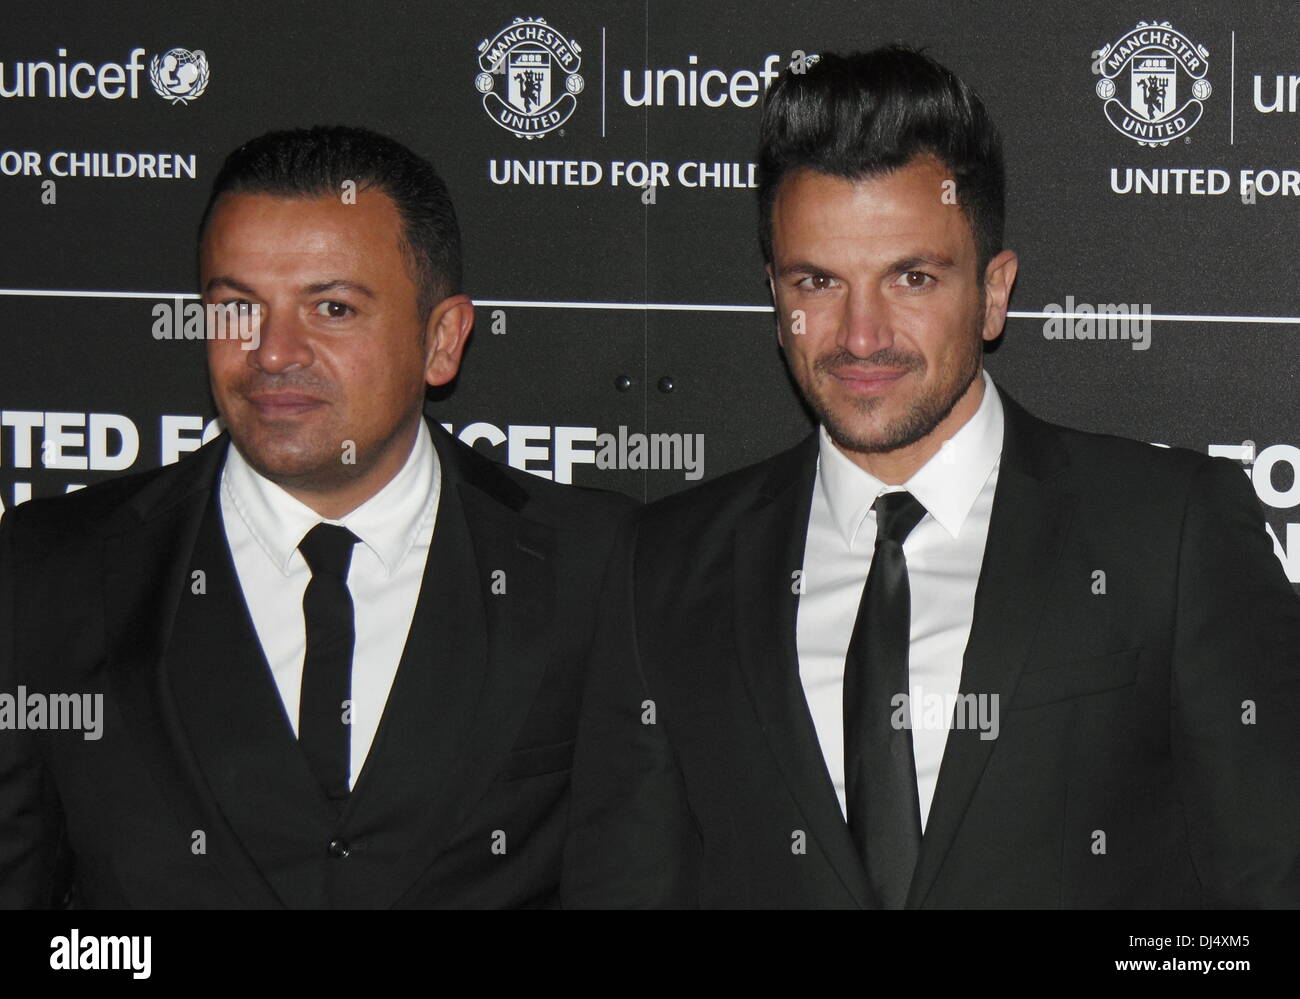 Old Trafford, Manchester, UK.  21 Nov 2013.  Michael and Peter Andre - Arrivals at the United for UNICEF Gala Dinner Stock Photo